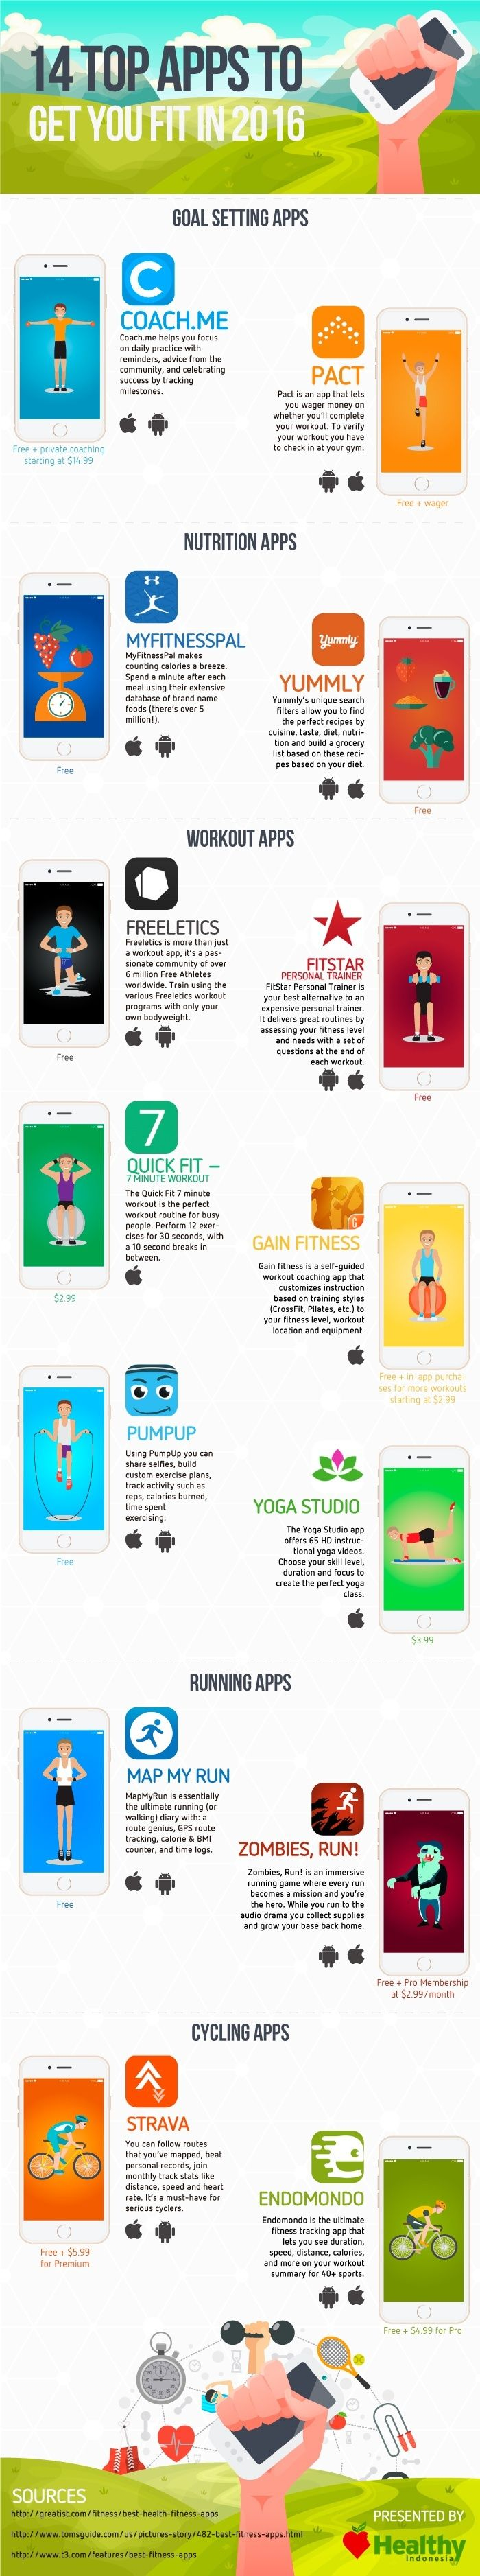 14 Top Apps To Get You Fit in 2016